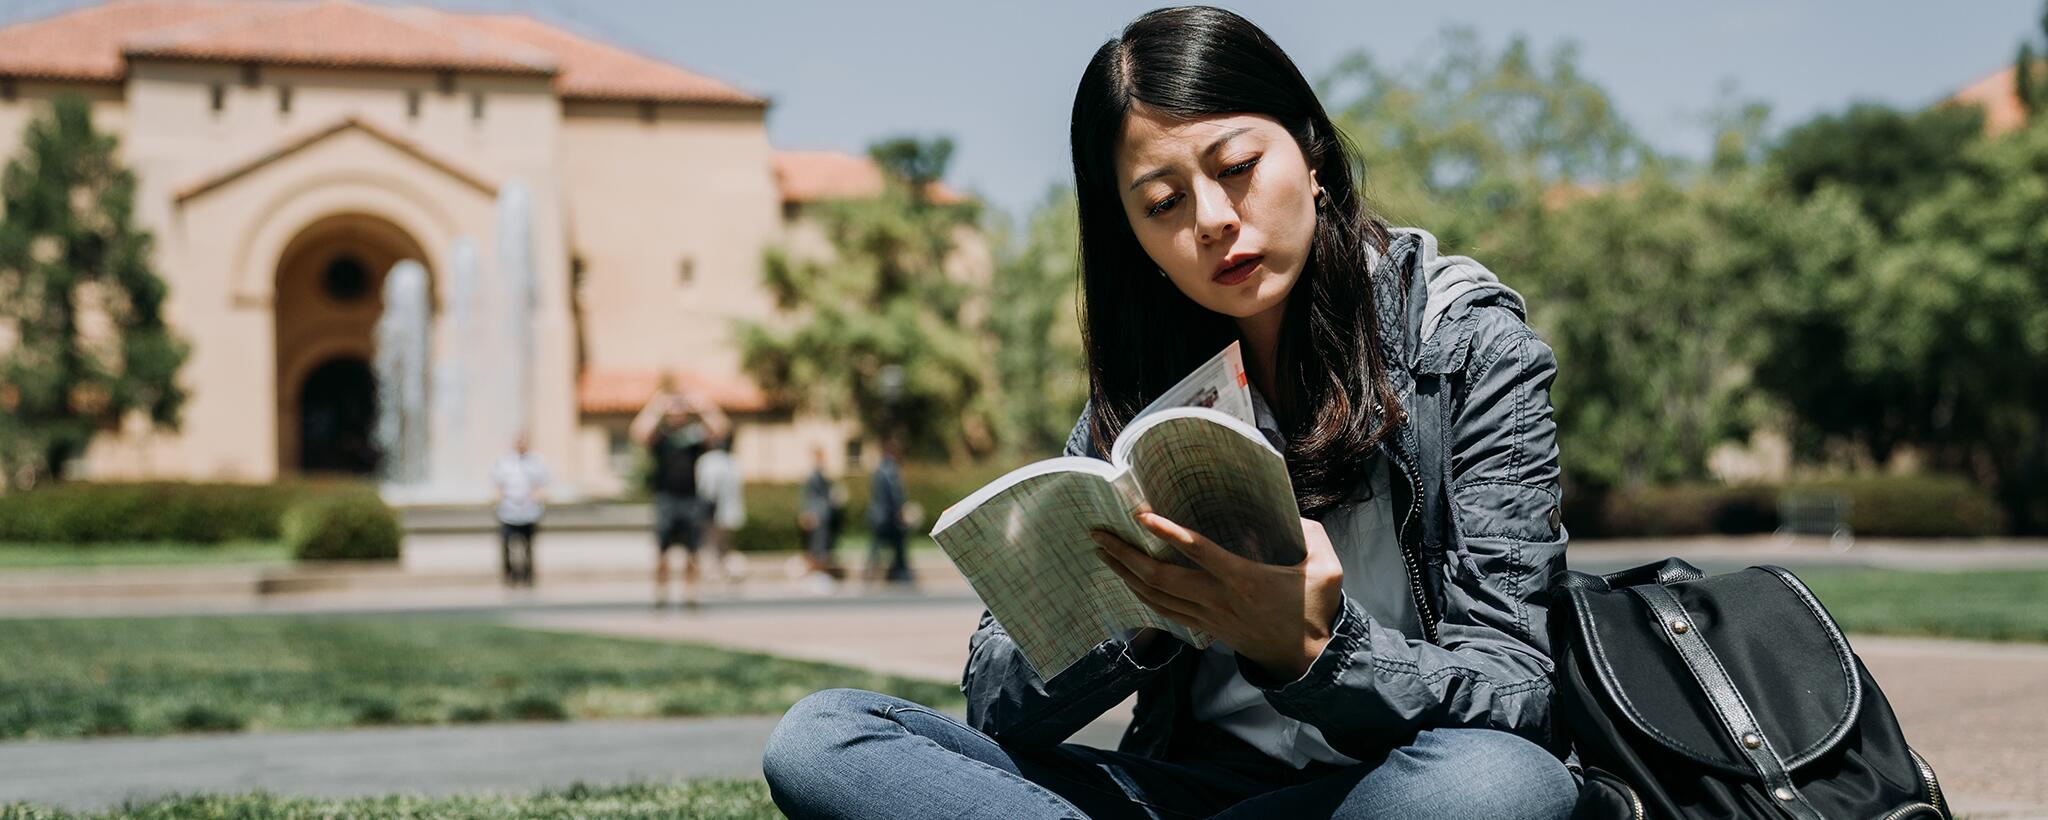 a college student reading a book on campus